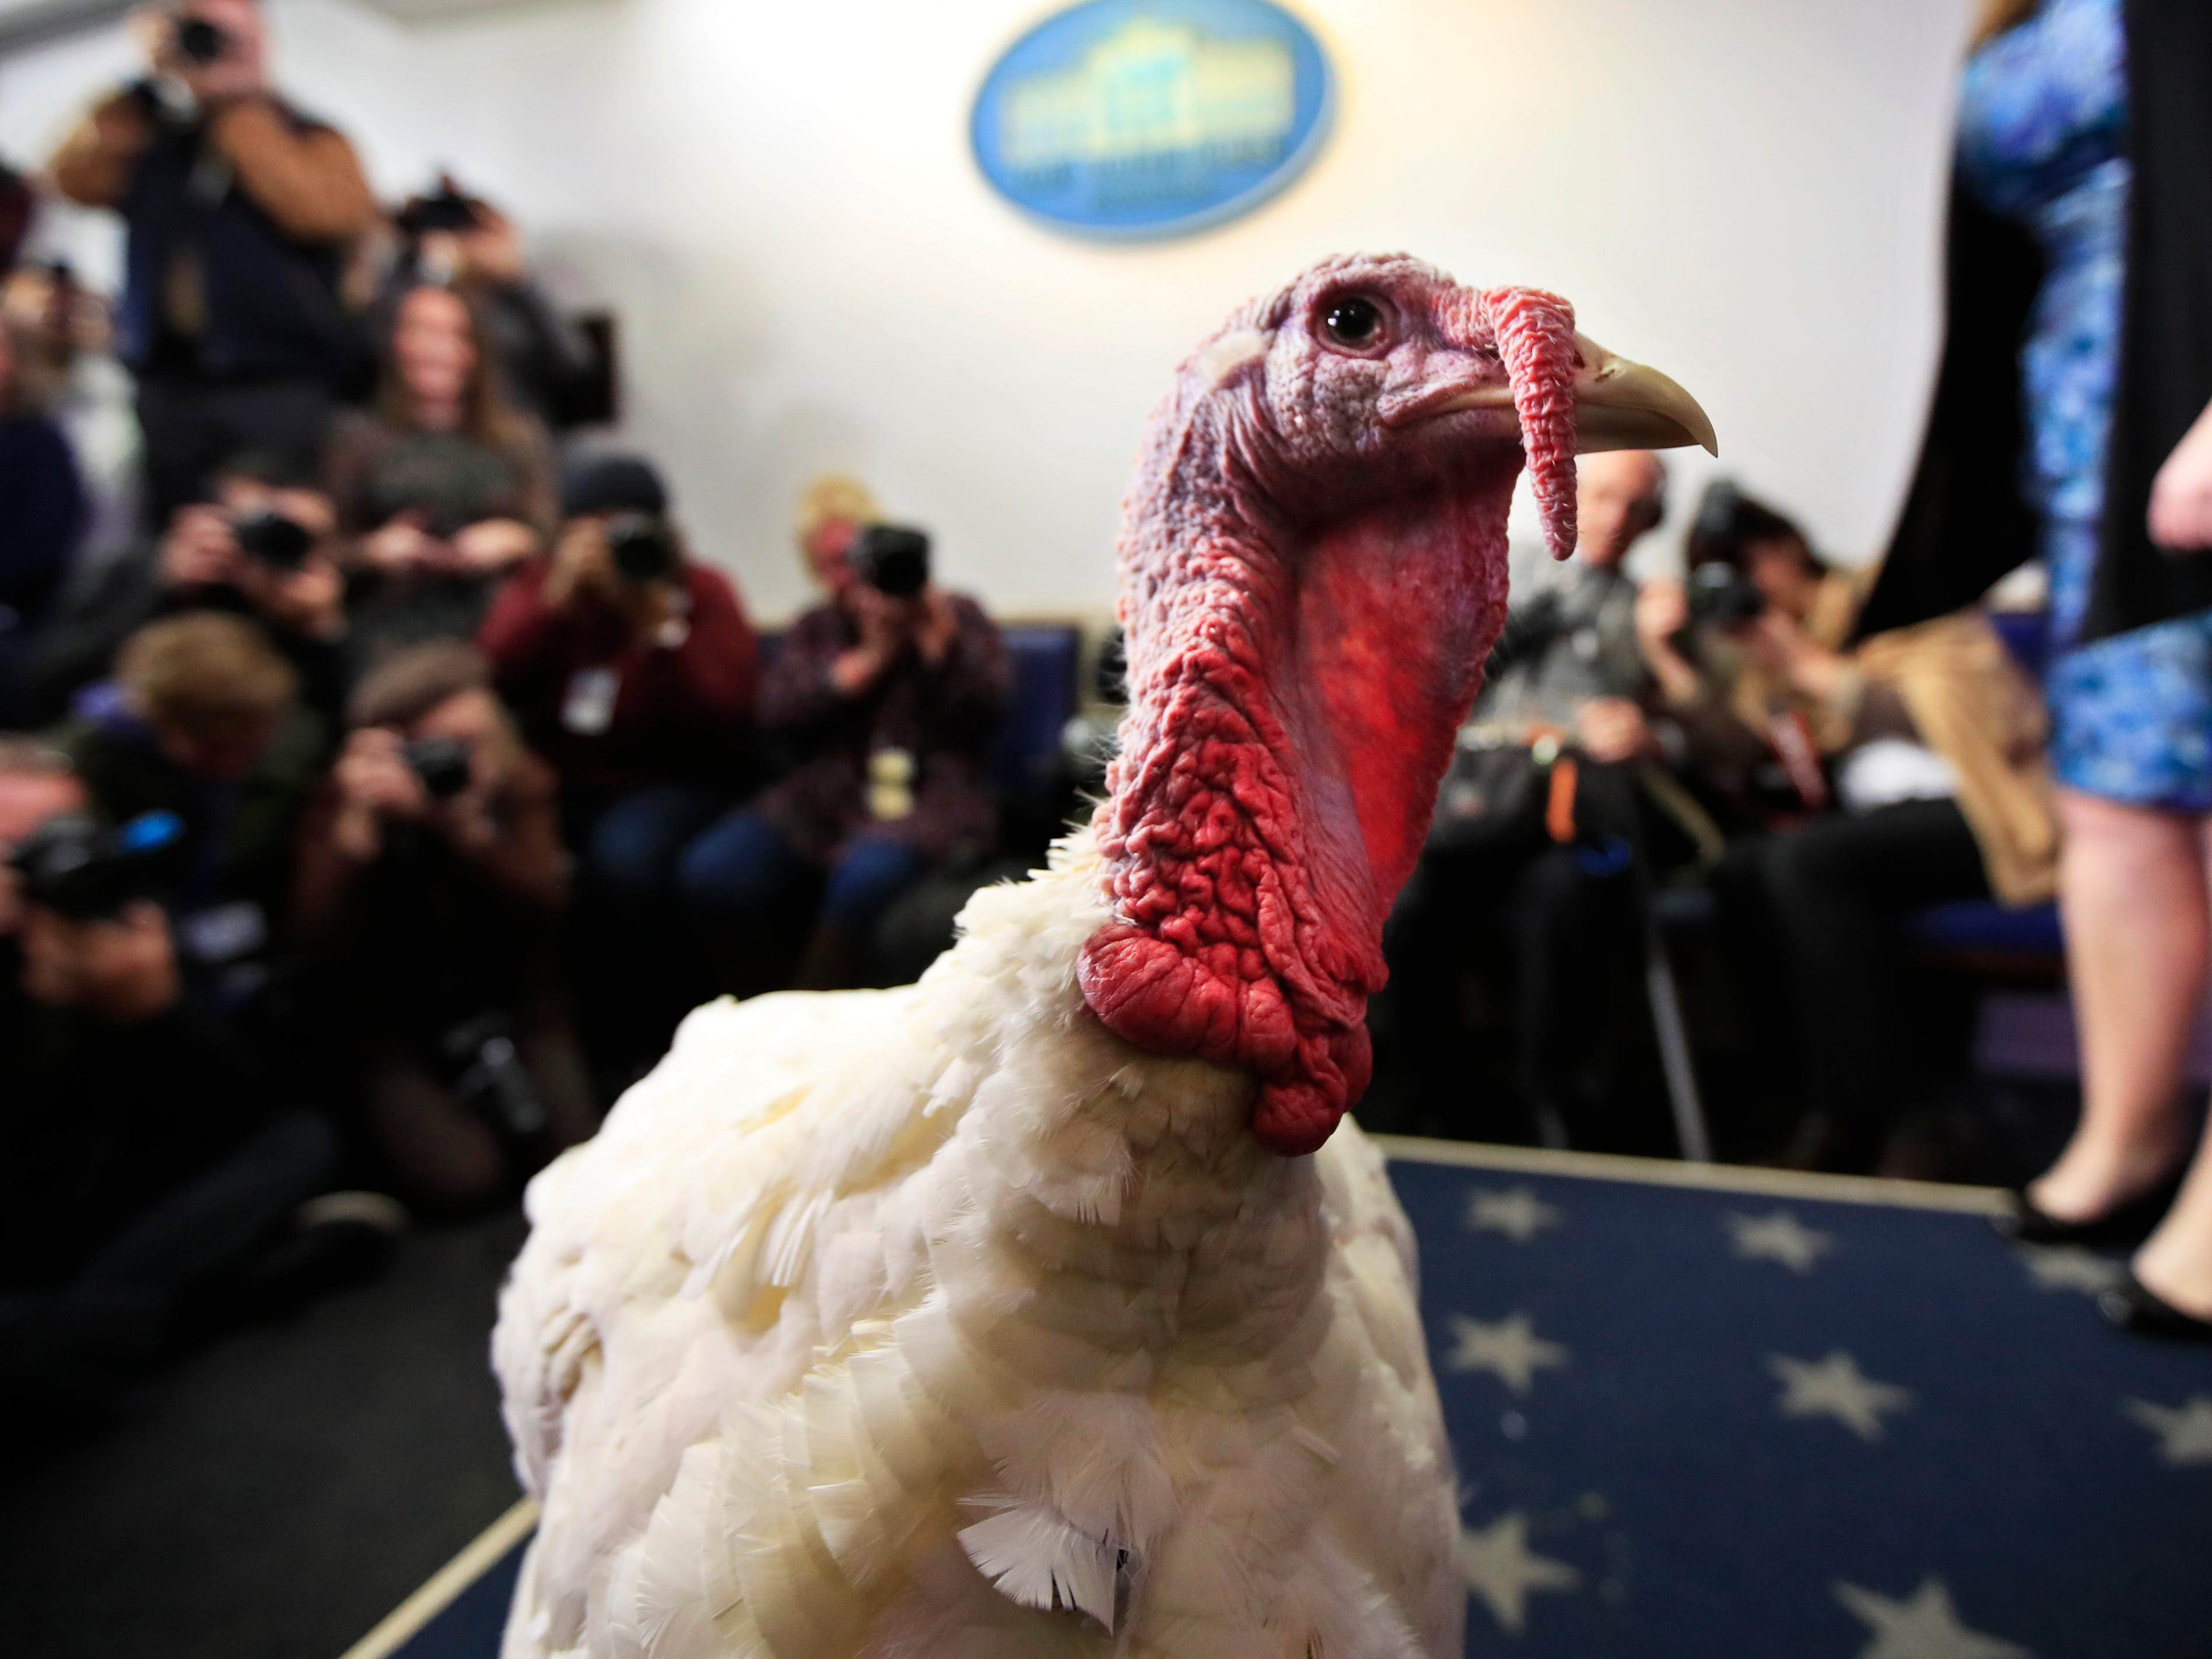 A live turkey is brought into the James S. Brady Press Briefing Room before the media at the White House, Tuesday, Nov. 20, 2018. The pardoning ceremony, to happen later, will mark its 71st year since it first took place in 1947.